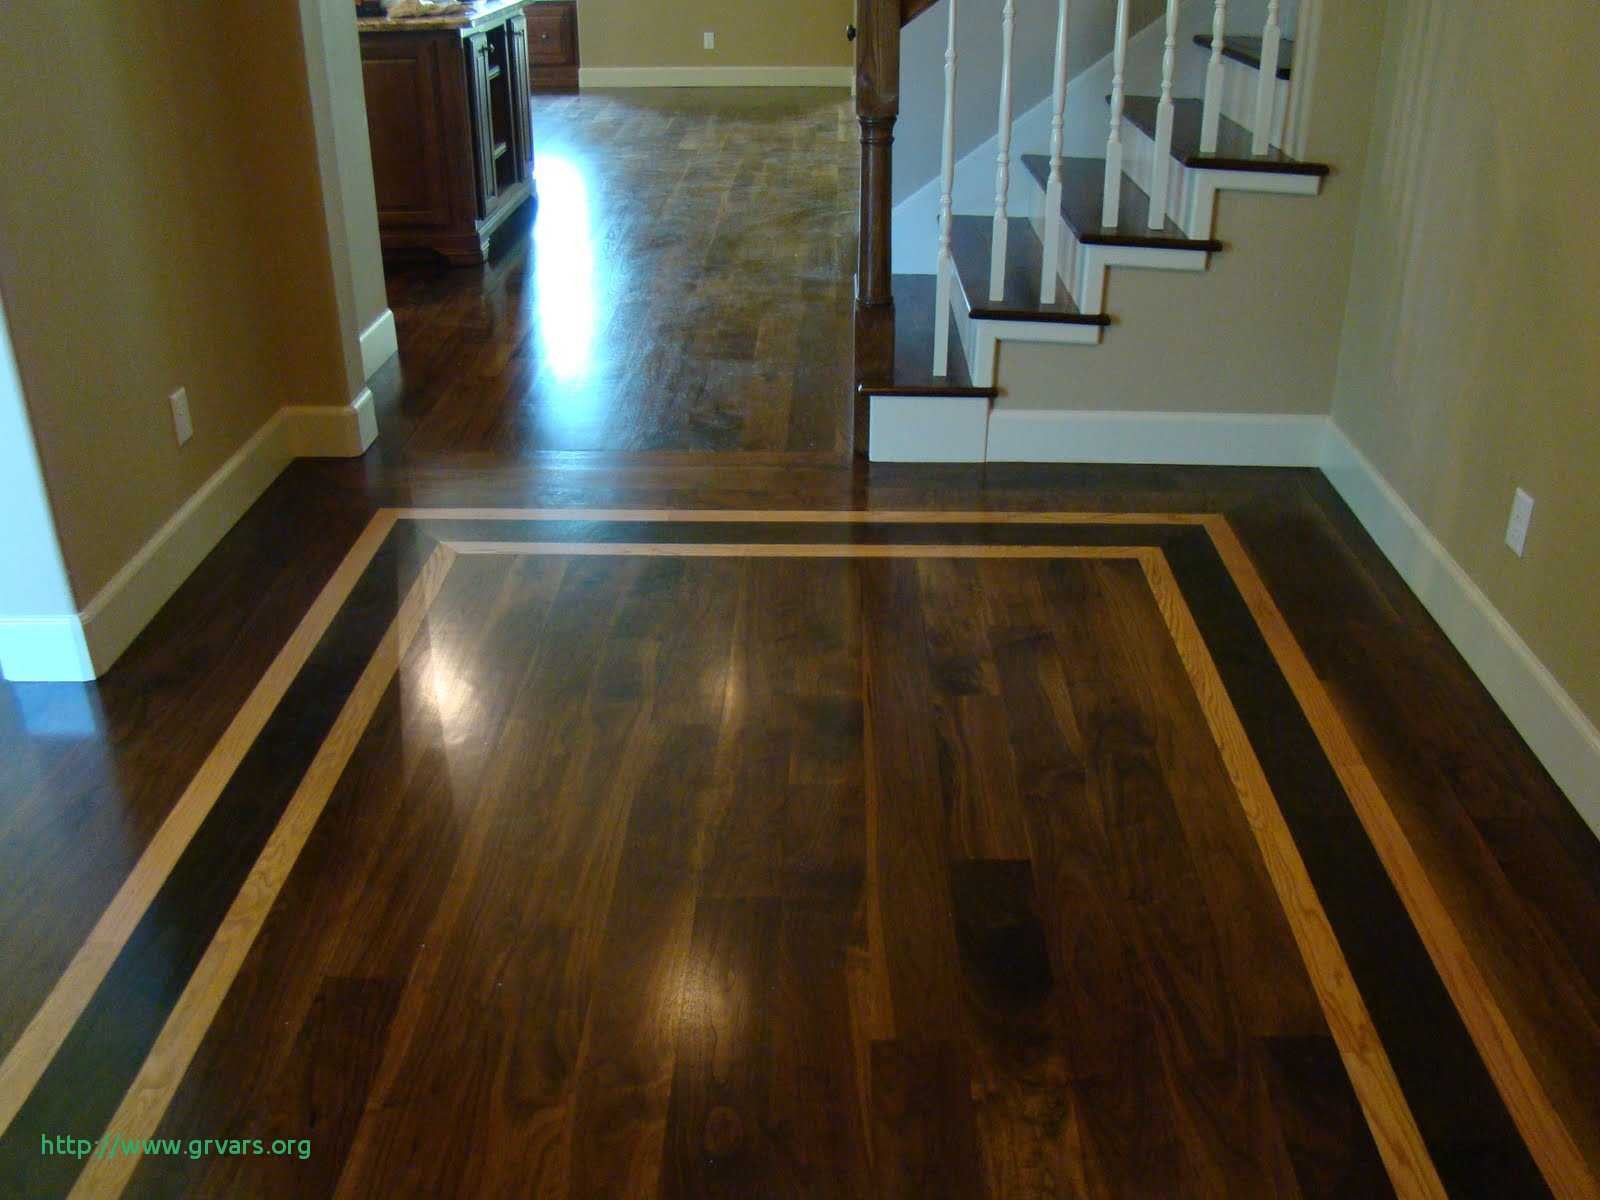 a to z hardwood flooring of hardwood flooring nails 17 frais hardwood flooring monmouth county in hardwood flooring nails 17 frais hardwood flooring monmouth county nj ideas blog